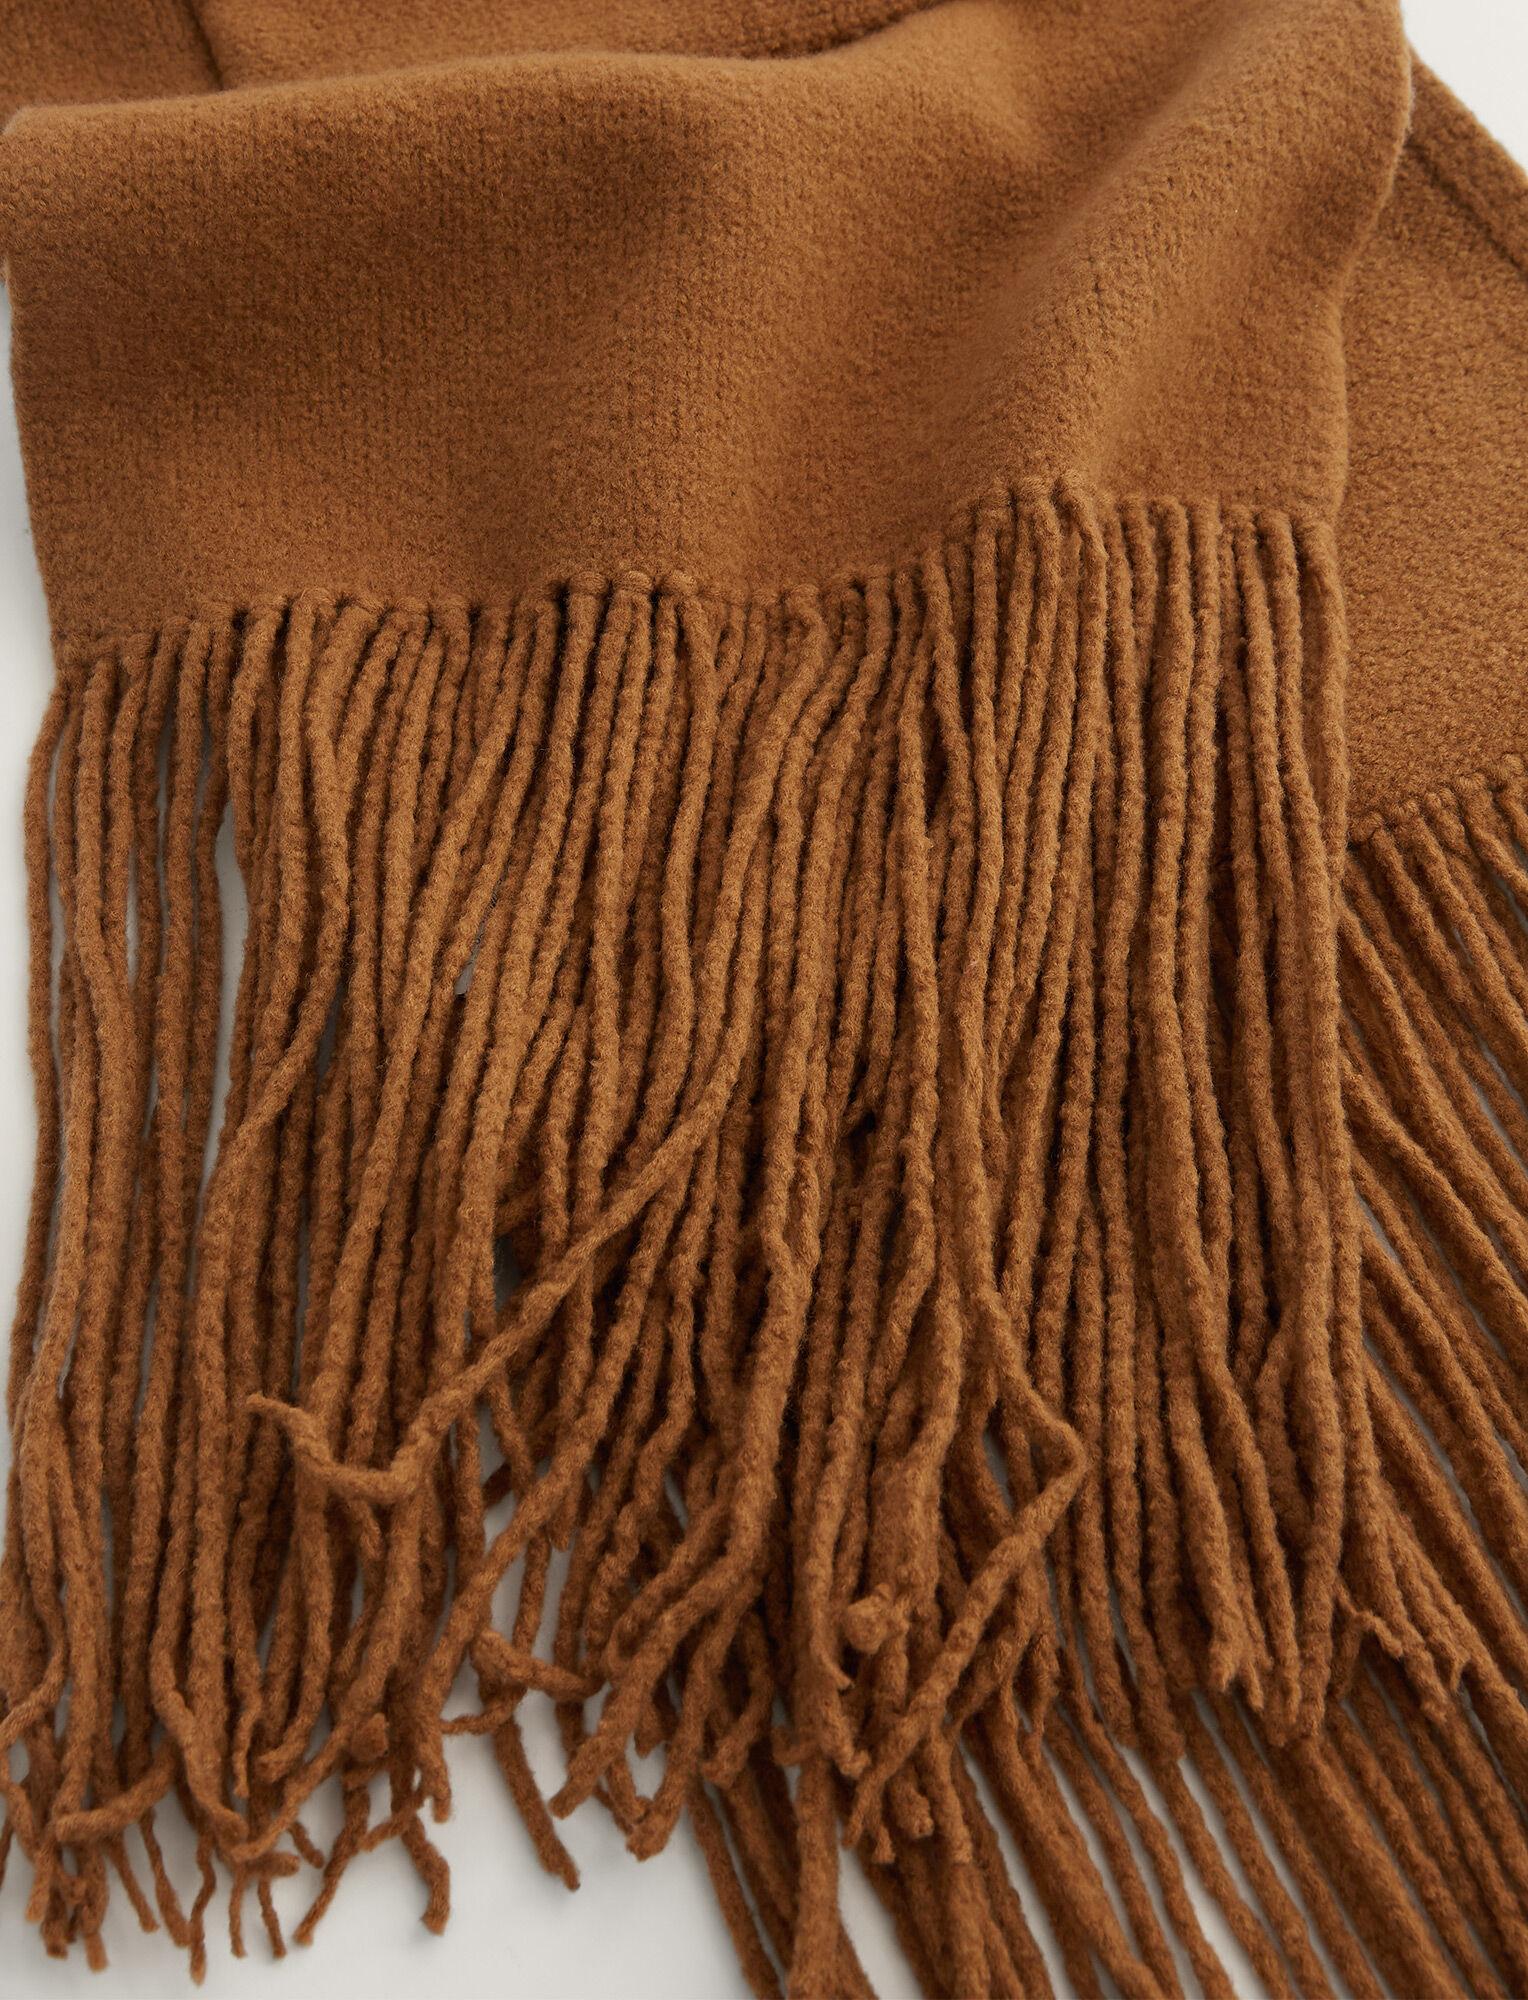 Joseph, Scarf Boiled Wool Knit, in Camel